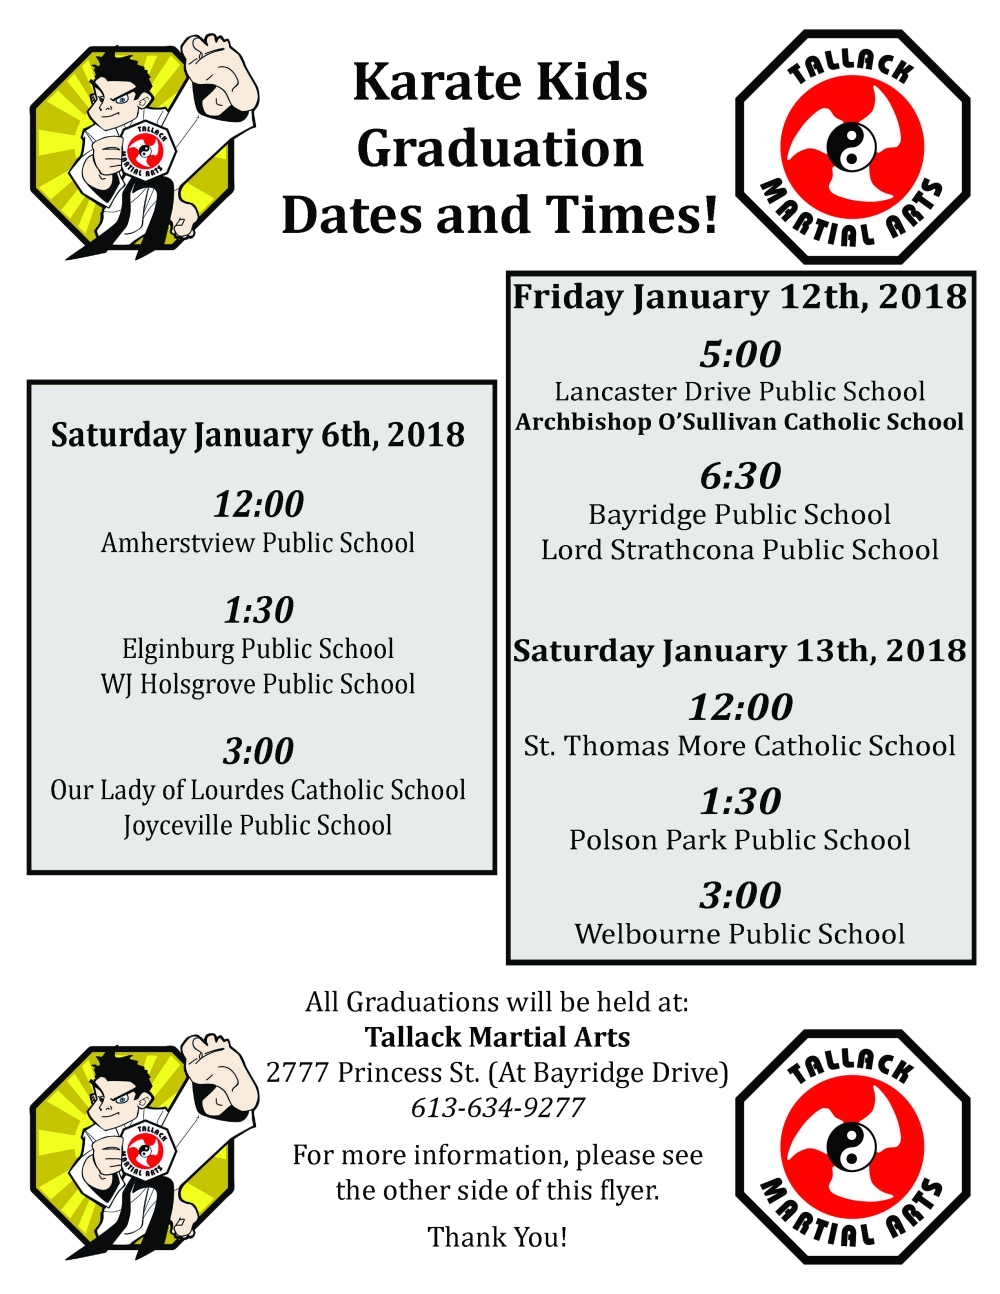 Karate Kids - January 2018 Graduation Schedule